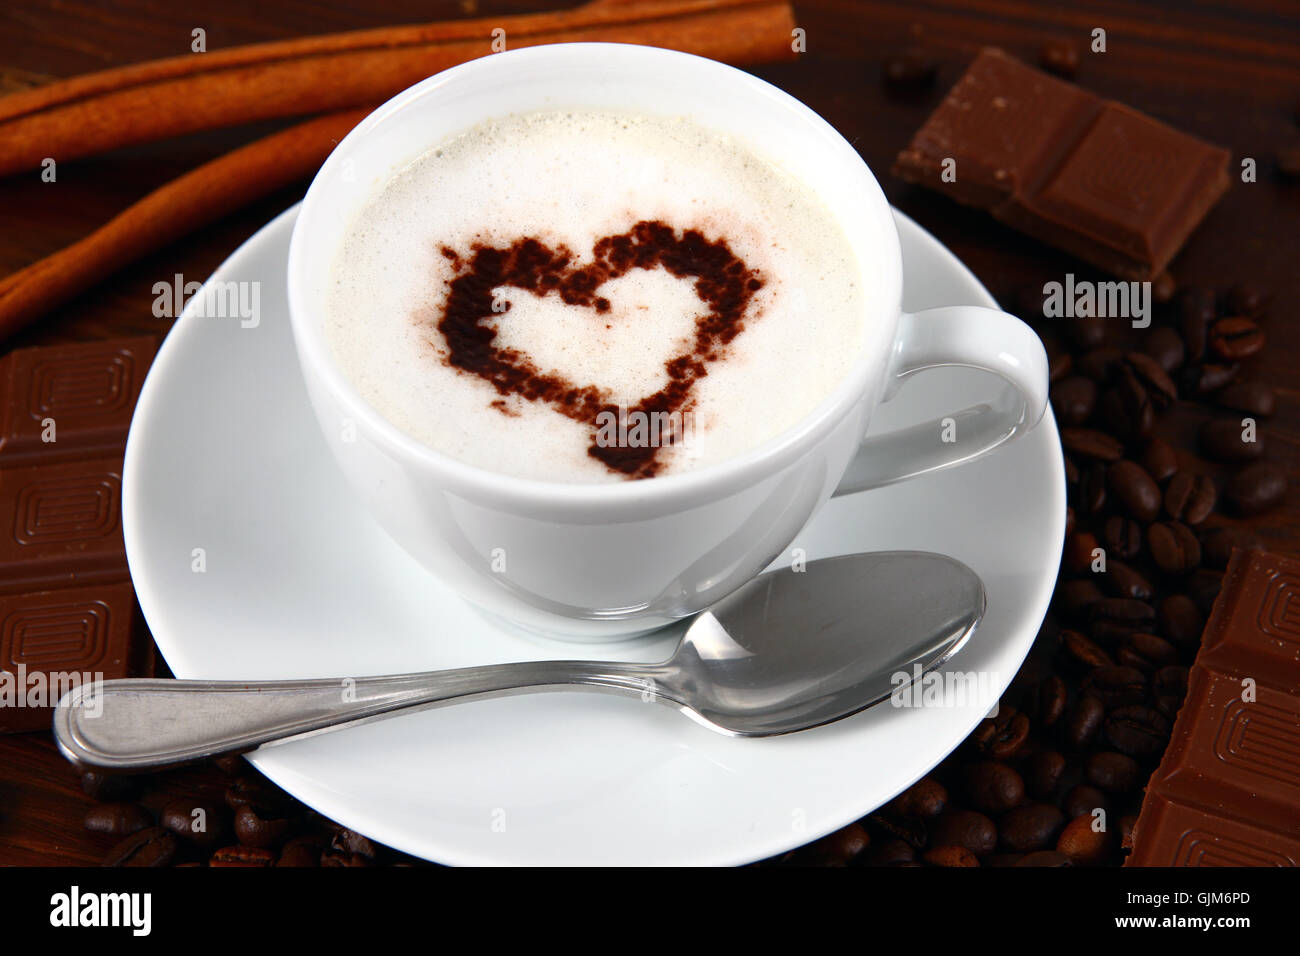 semiluxury food coffee with milk cappuccino - Stock Image